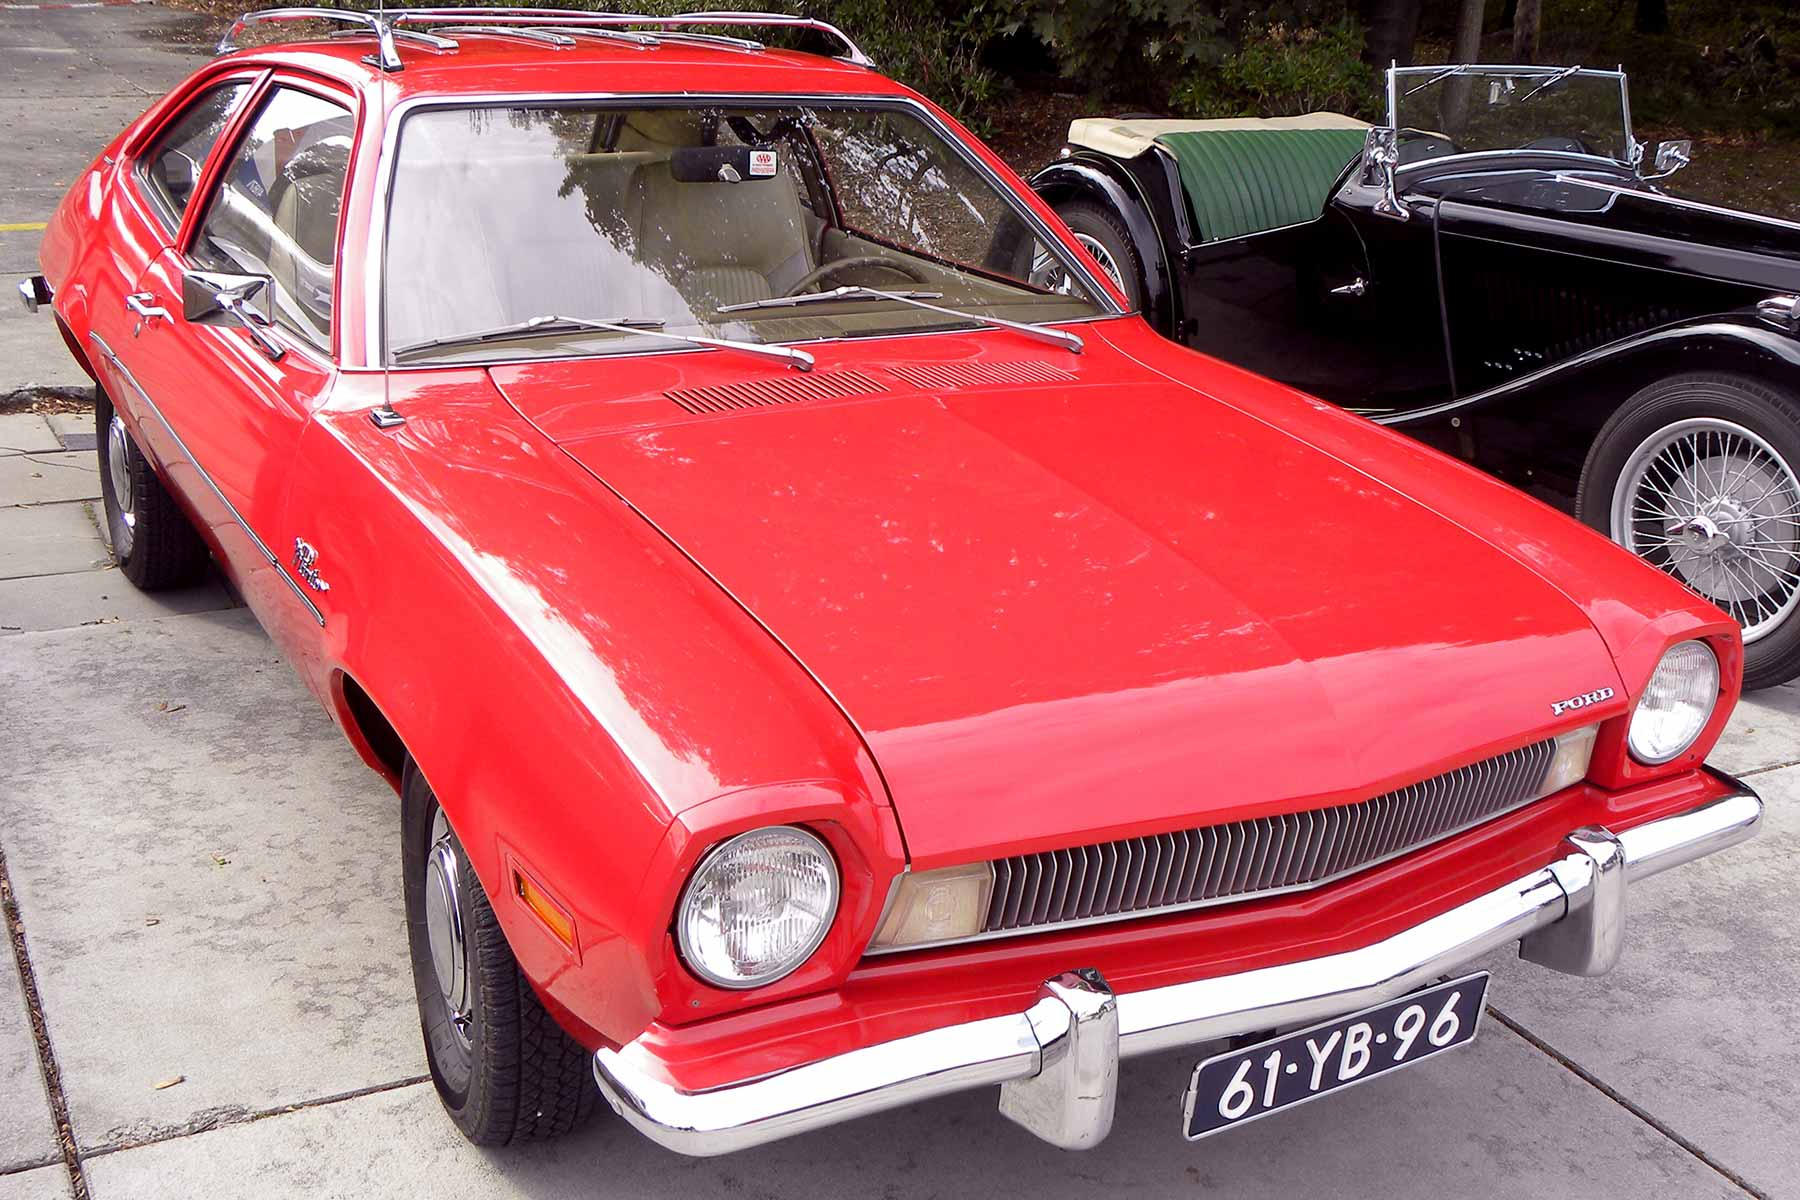 Ford Pinto: The Eco Car That Was An Ethical Disaster